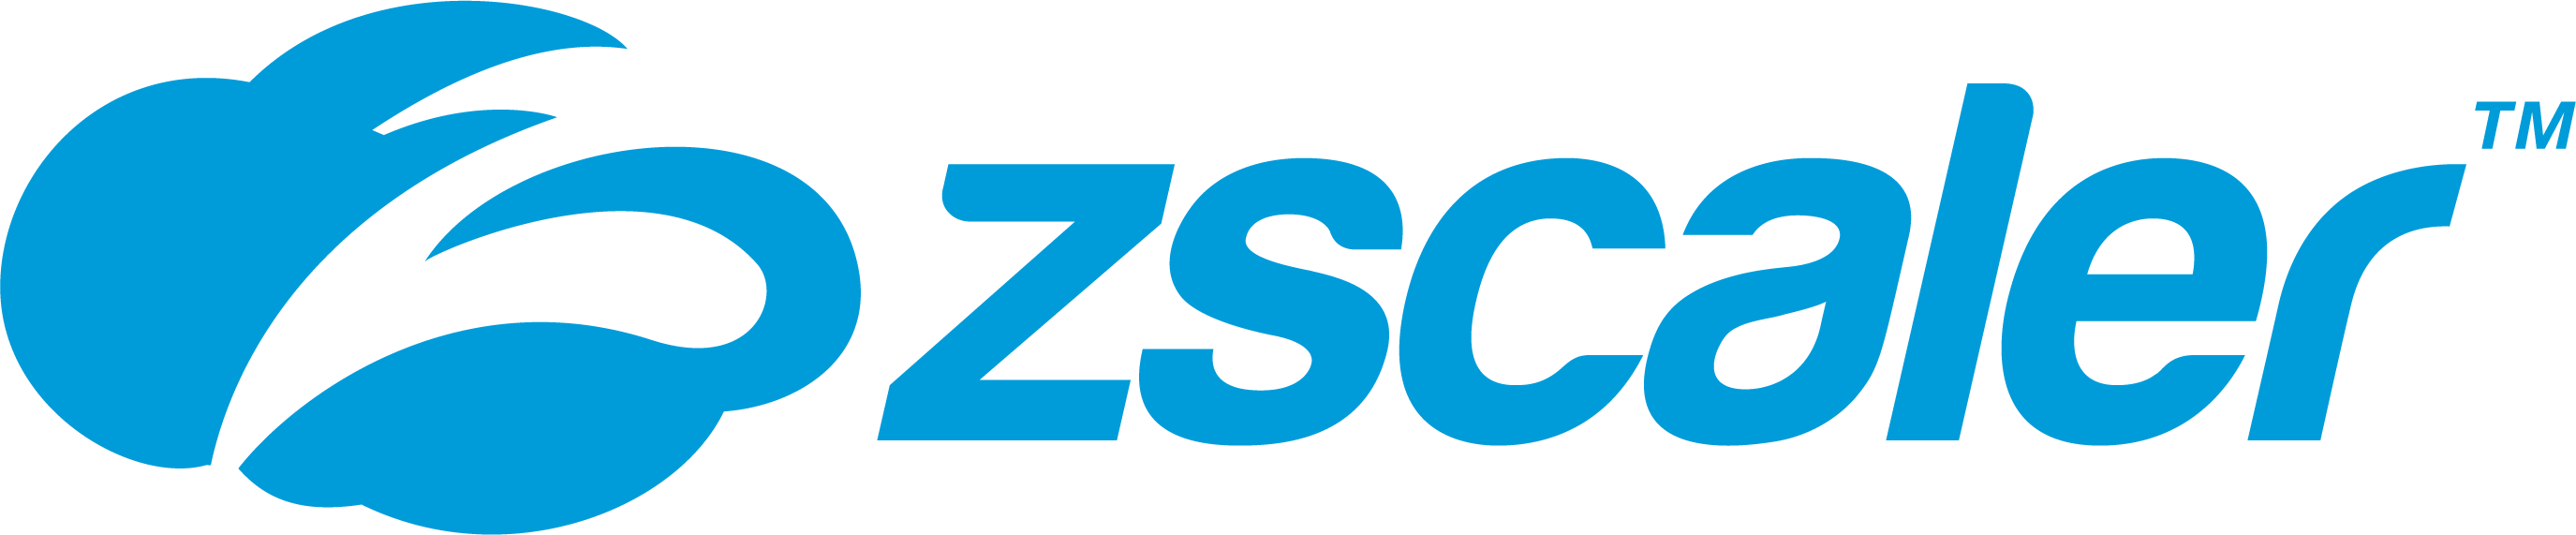 Sponsored by Zscaler